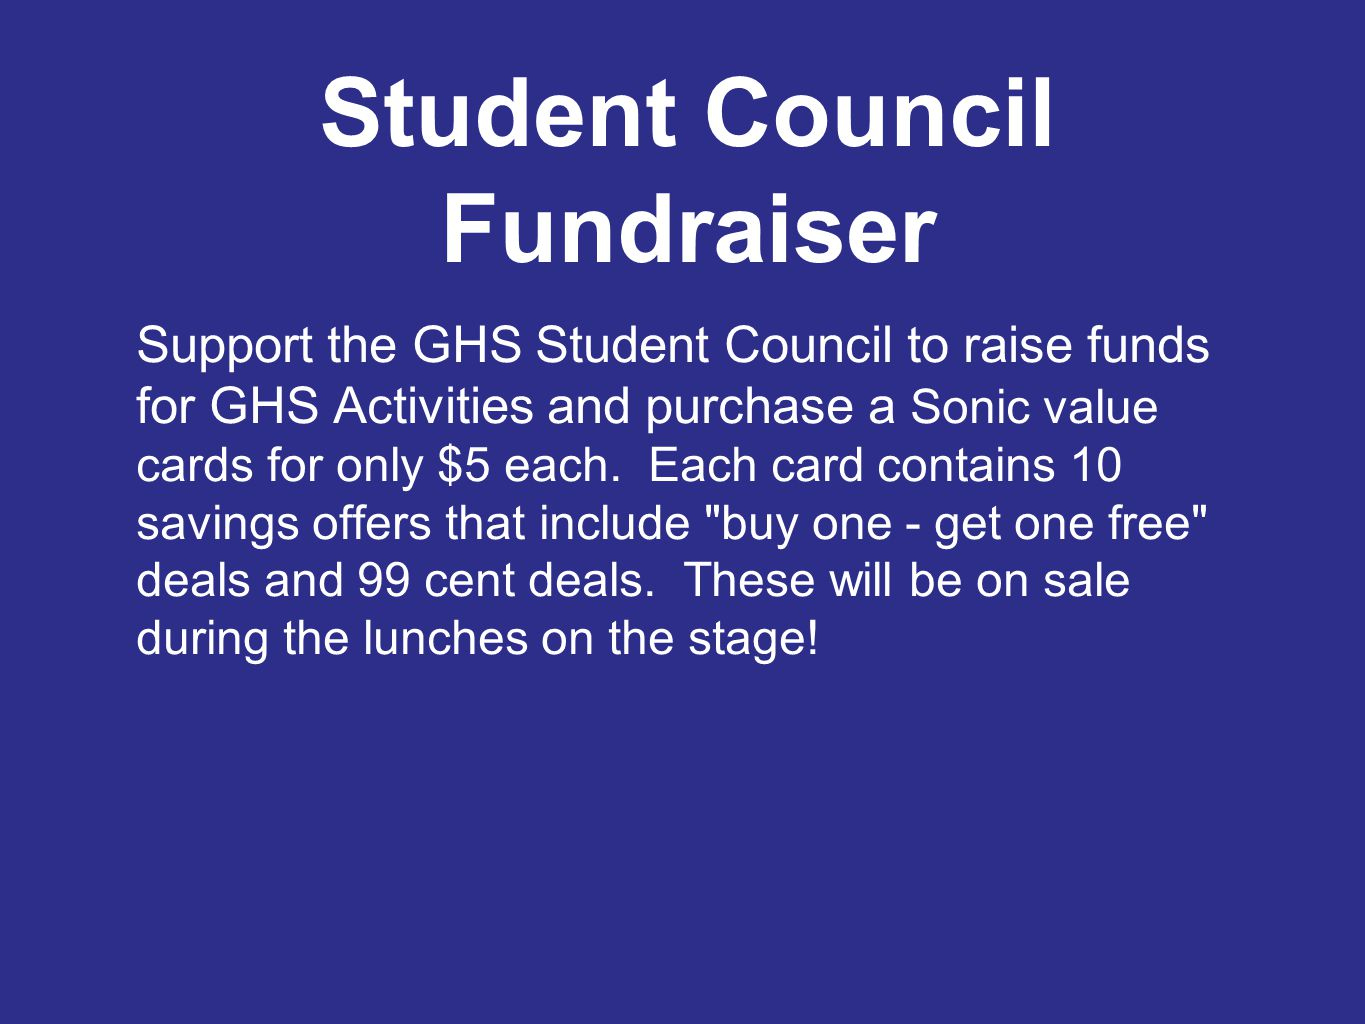 Student Council Fundraiser Support the GHS Student Council to raise funds for GHS Activities and purchase a Sonic value cards for only $5 each.